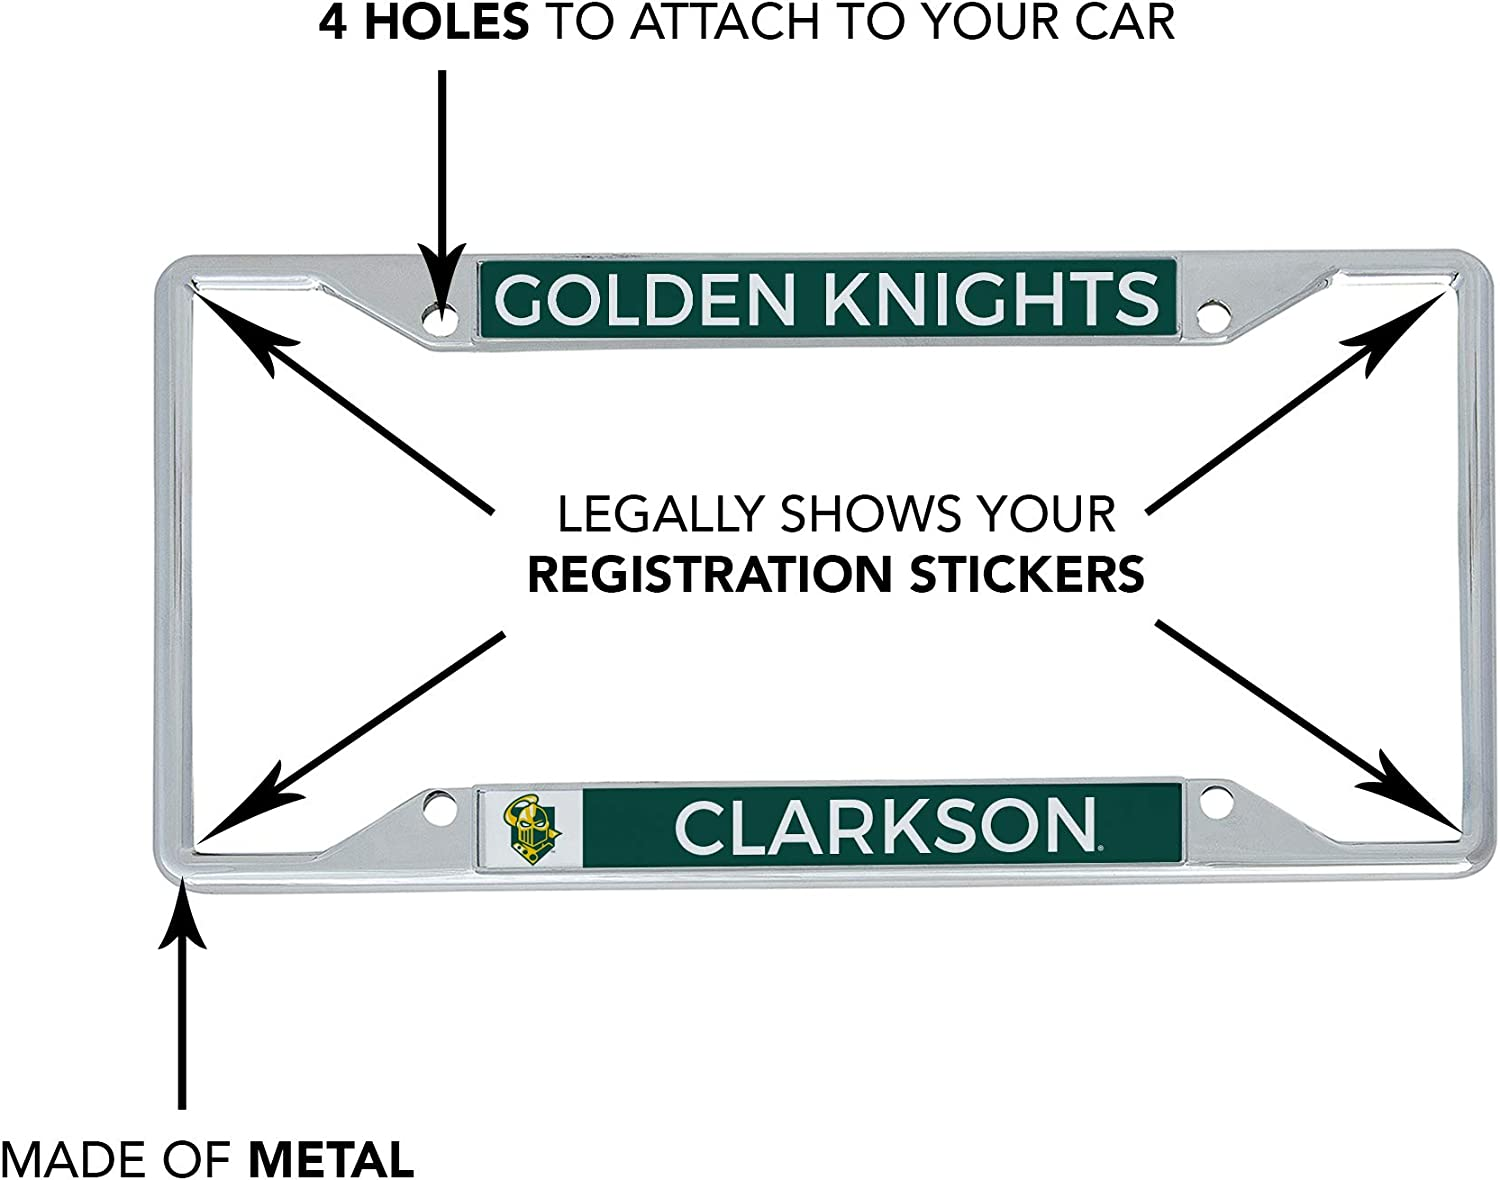 Mascot Desert Cactus Clarkson University Golden Knights NCAA Metal License Plate Frame for Front or Back of Car Officially Licensed